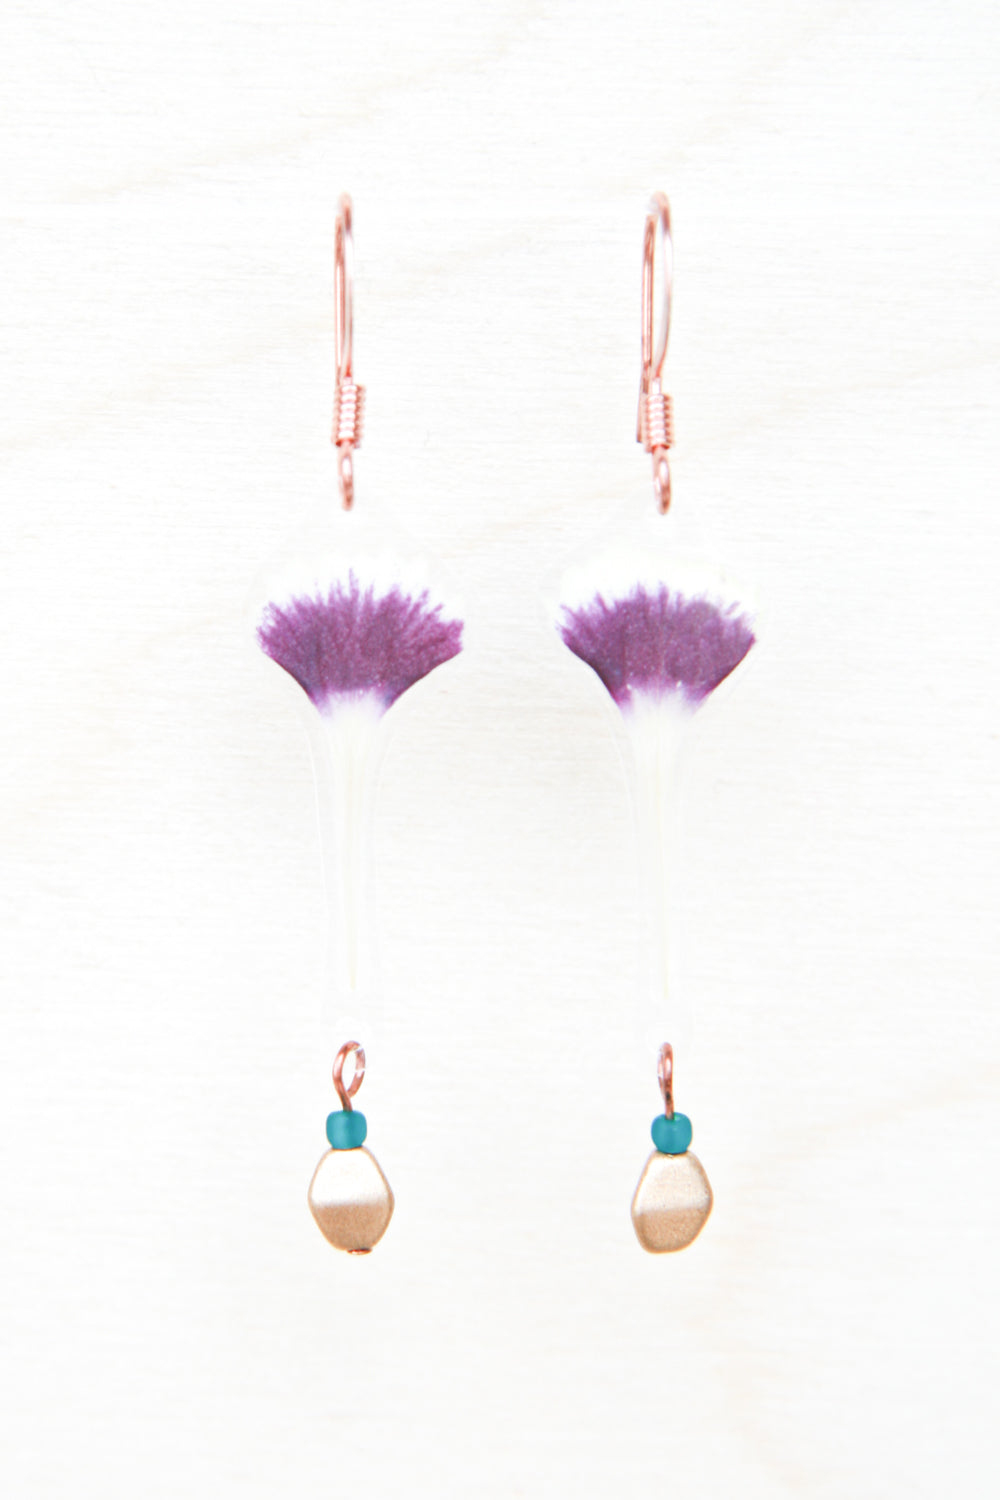 Sweet William Pressed Petal Earrings with Teal & Flax Glass Beads